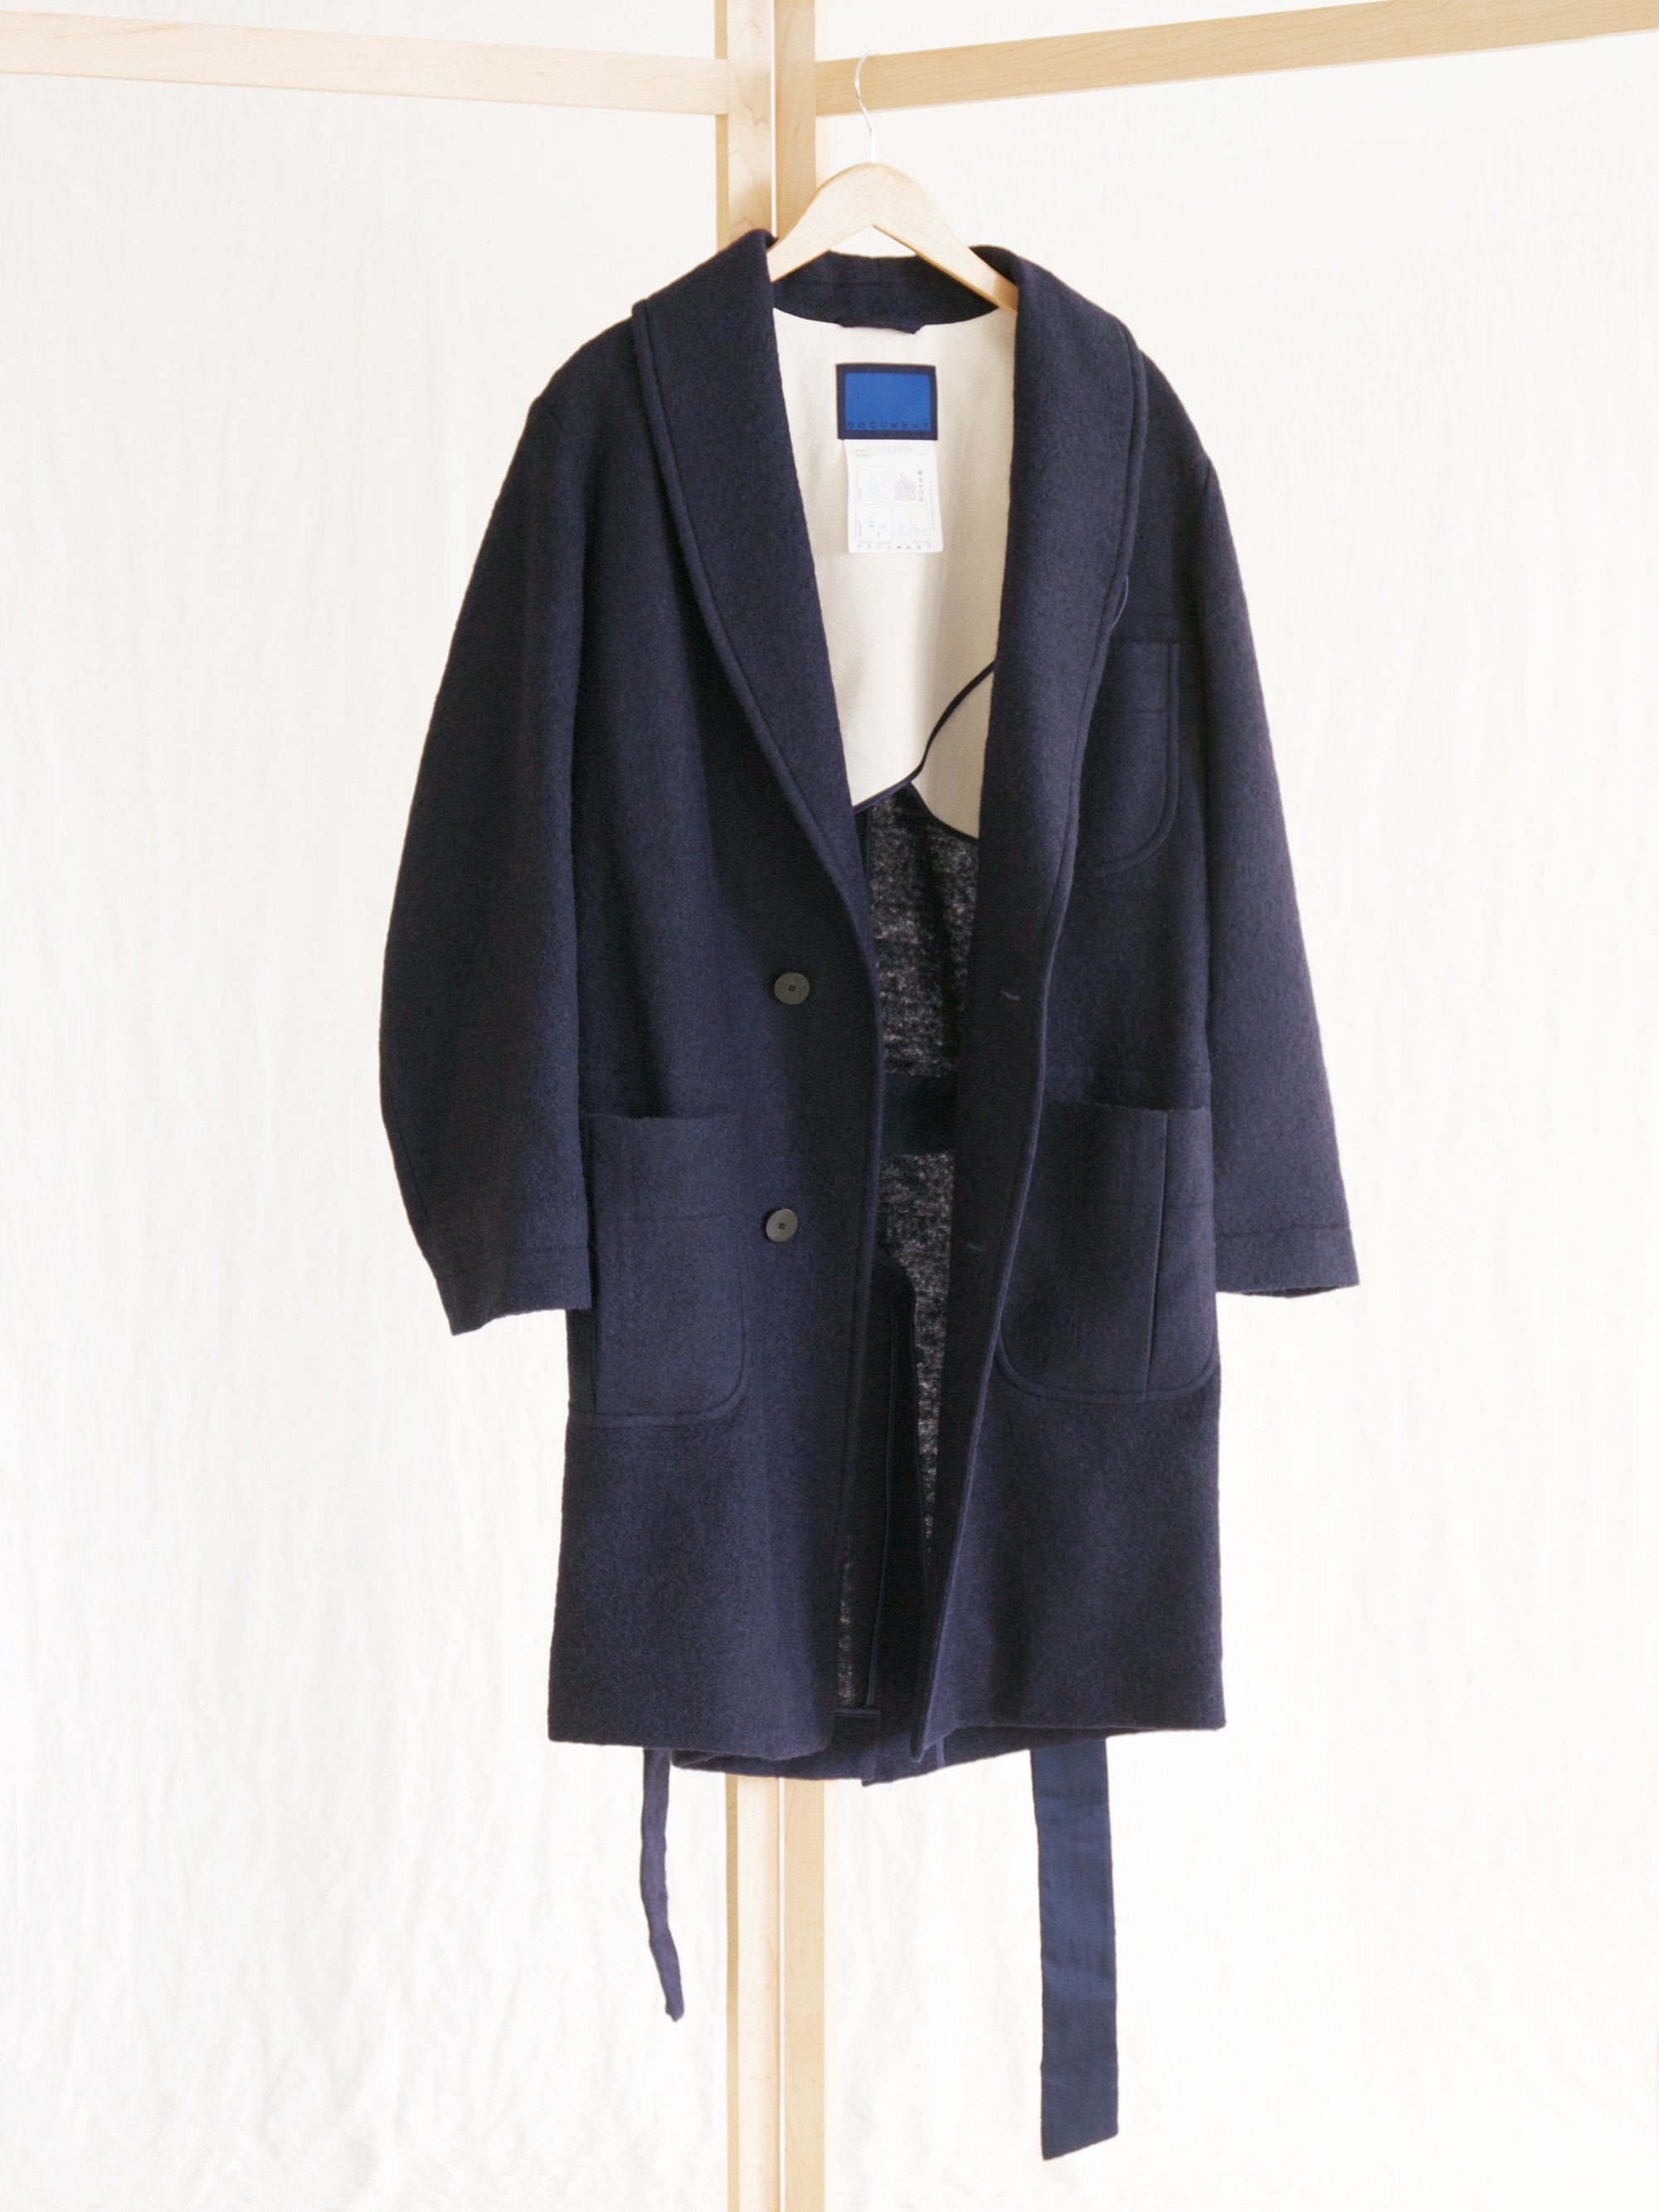 Namu Shop - Document The Document Signature Robe Coat